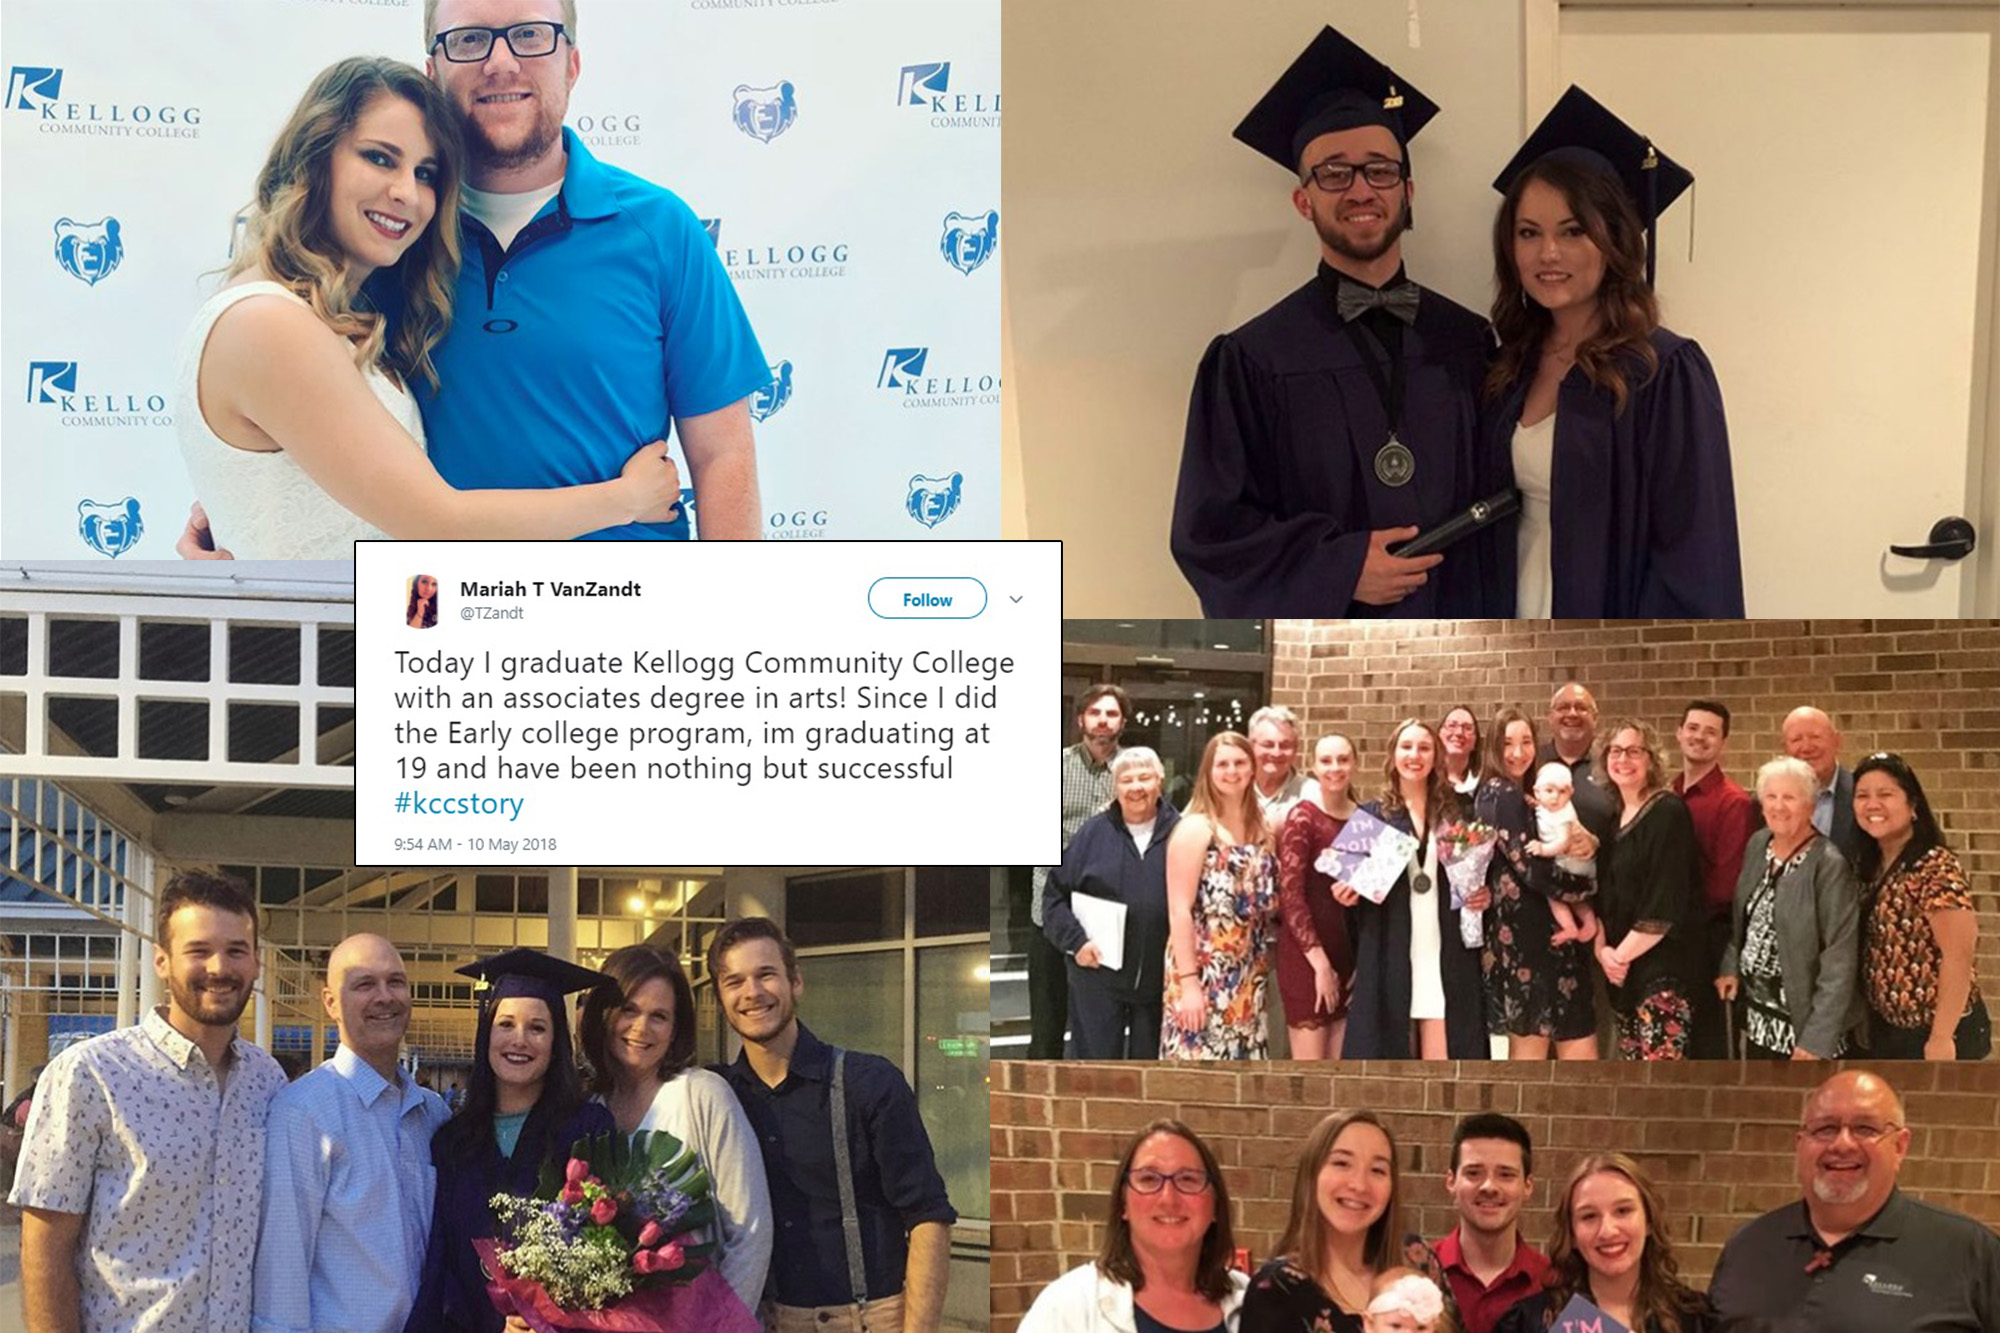 Photos of graduates and their friends and family members from various social media posts, collaged together to show the winners of a social media post contest.